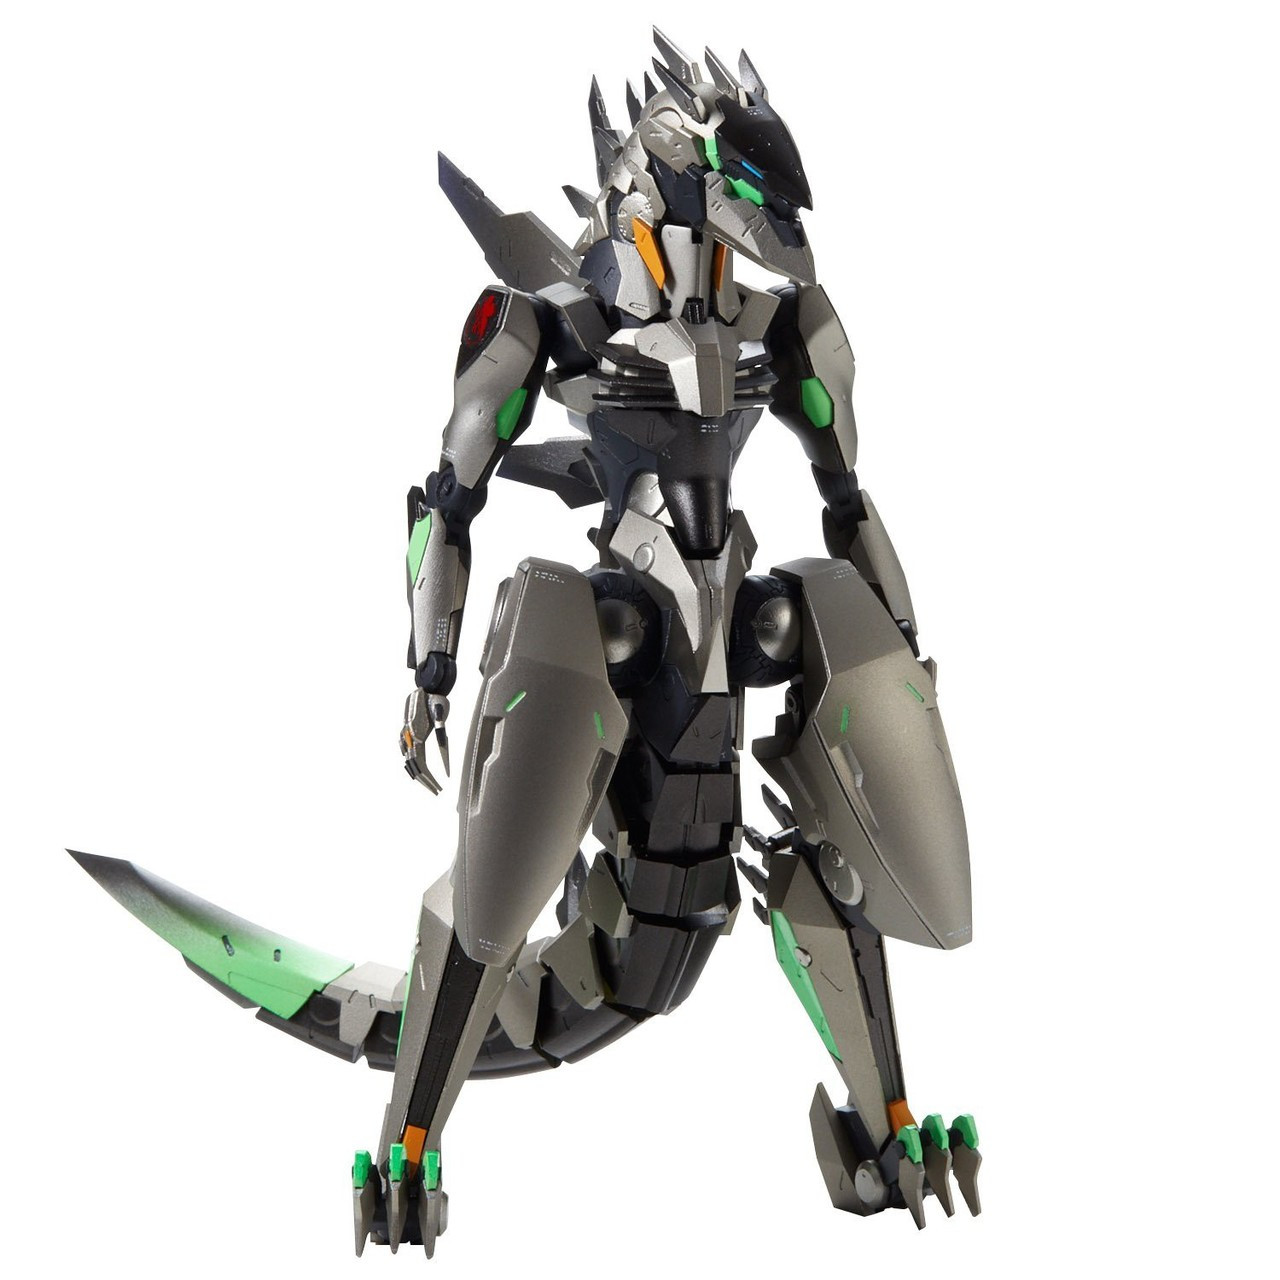 Godzilla vs Evangelion Riobot Shiryu Prototype Unit 01 Action Figure